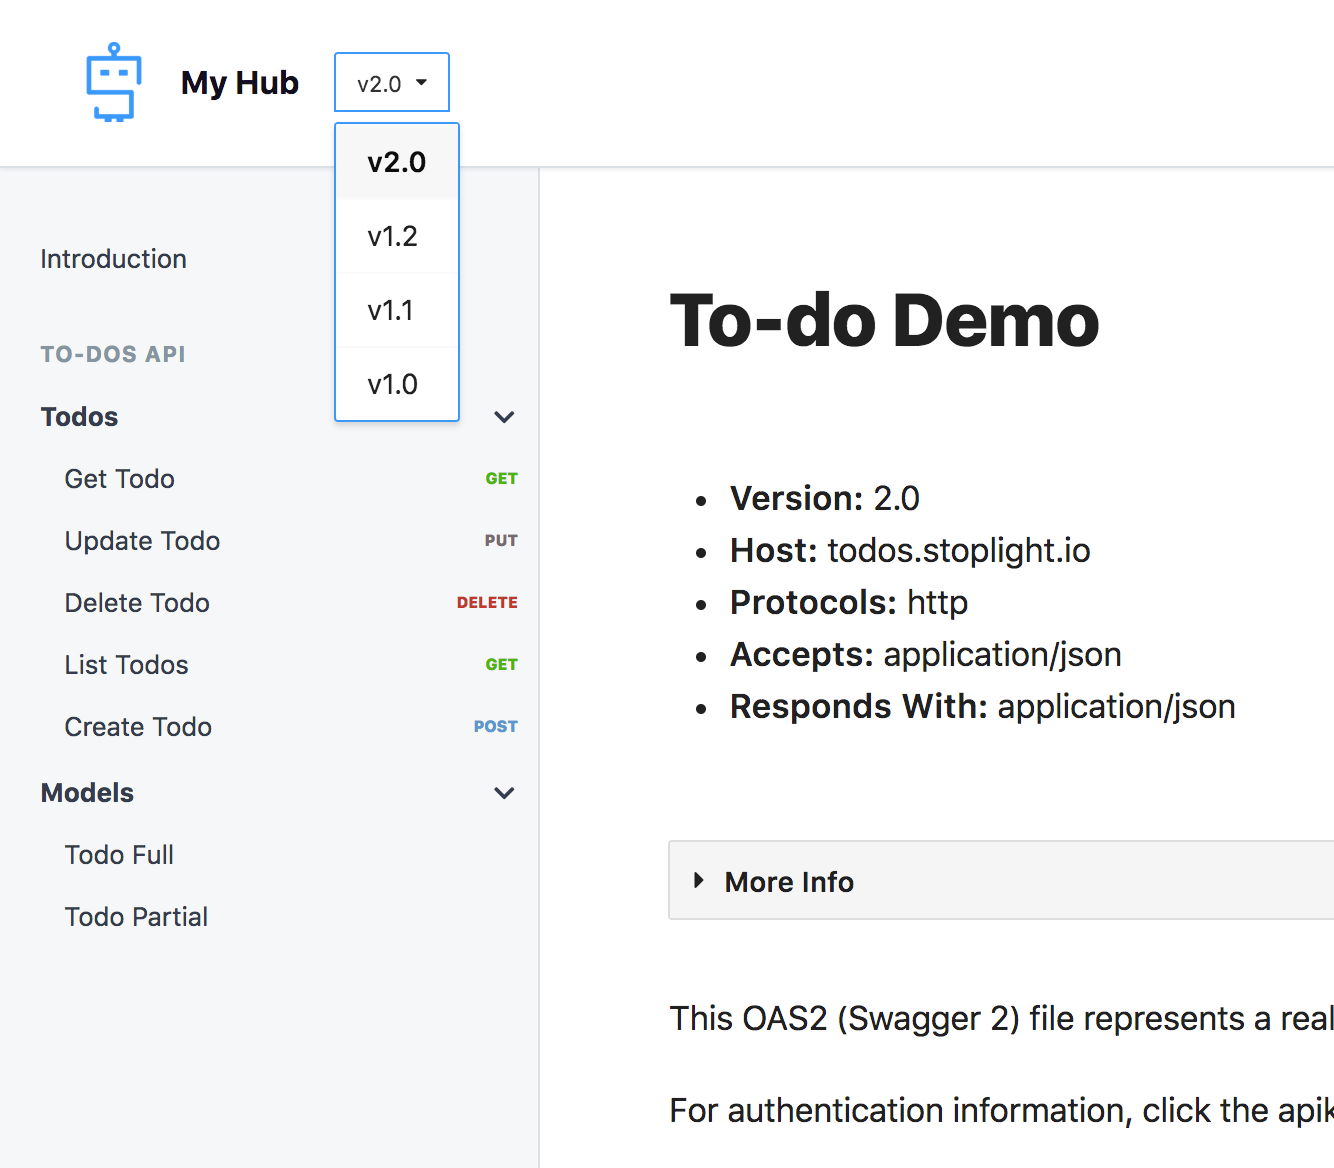 You can select the version you want to see the documentation for in the dropdown selector